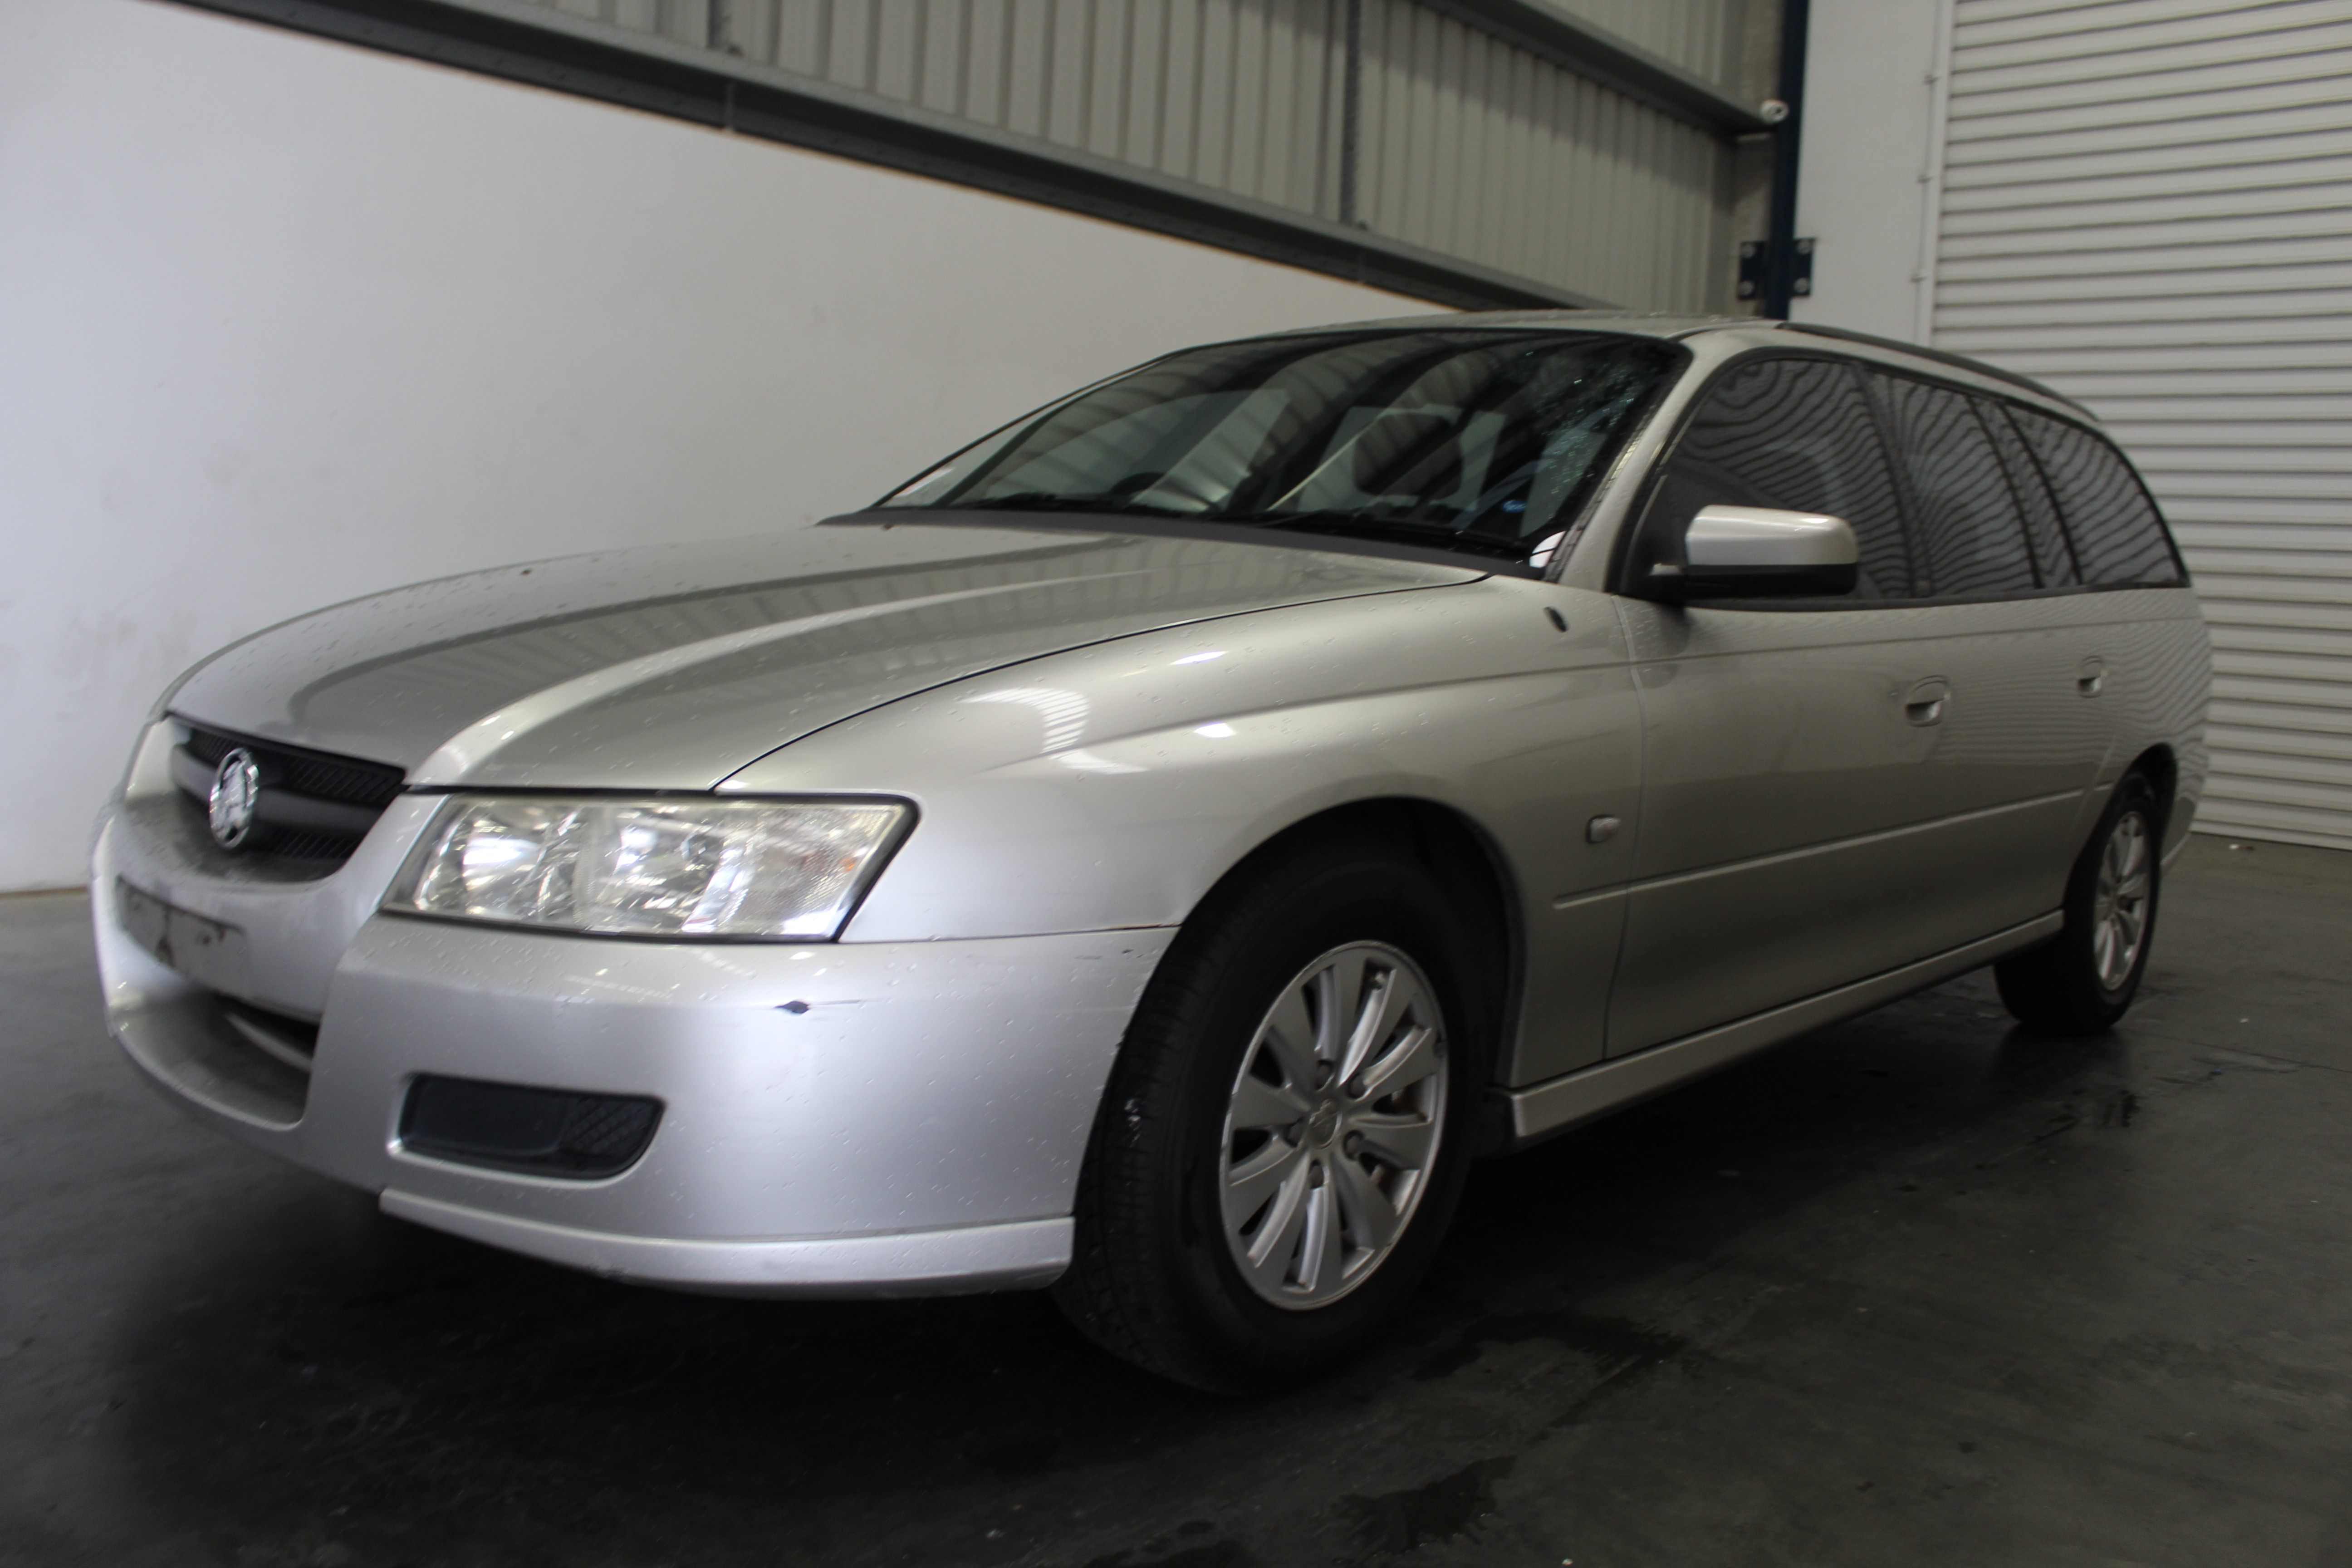 2006 Holden Commodore Acclaim VZ Automatic Wagon